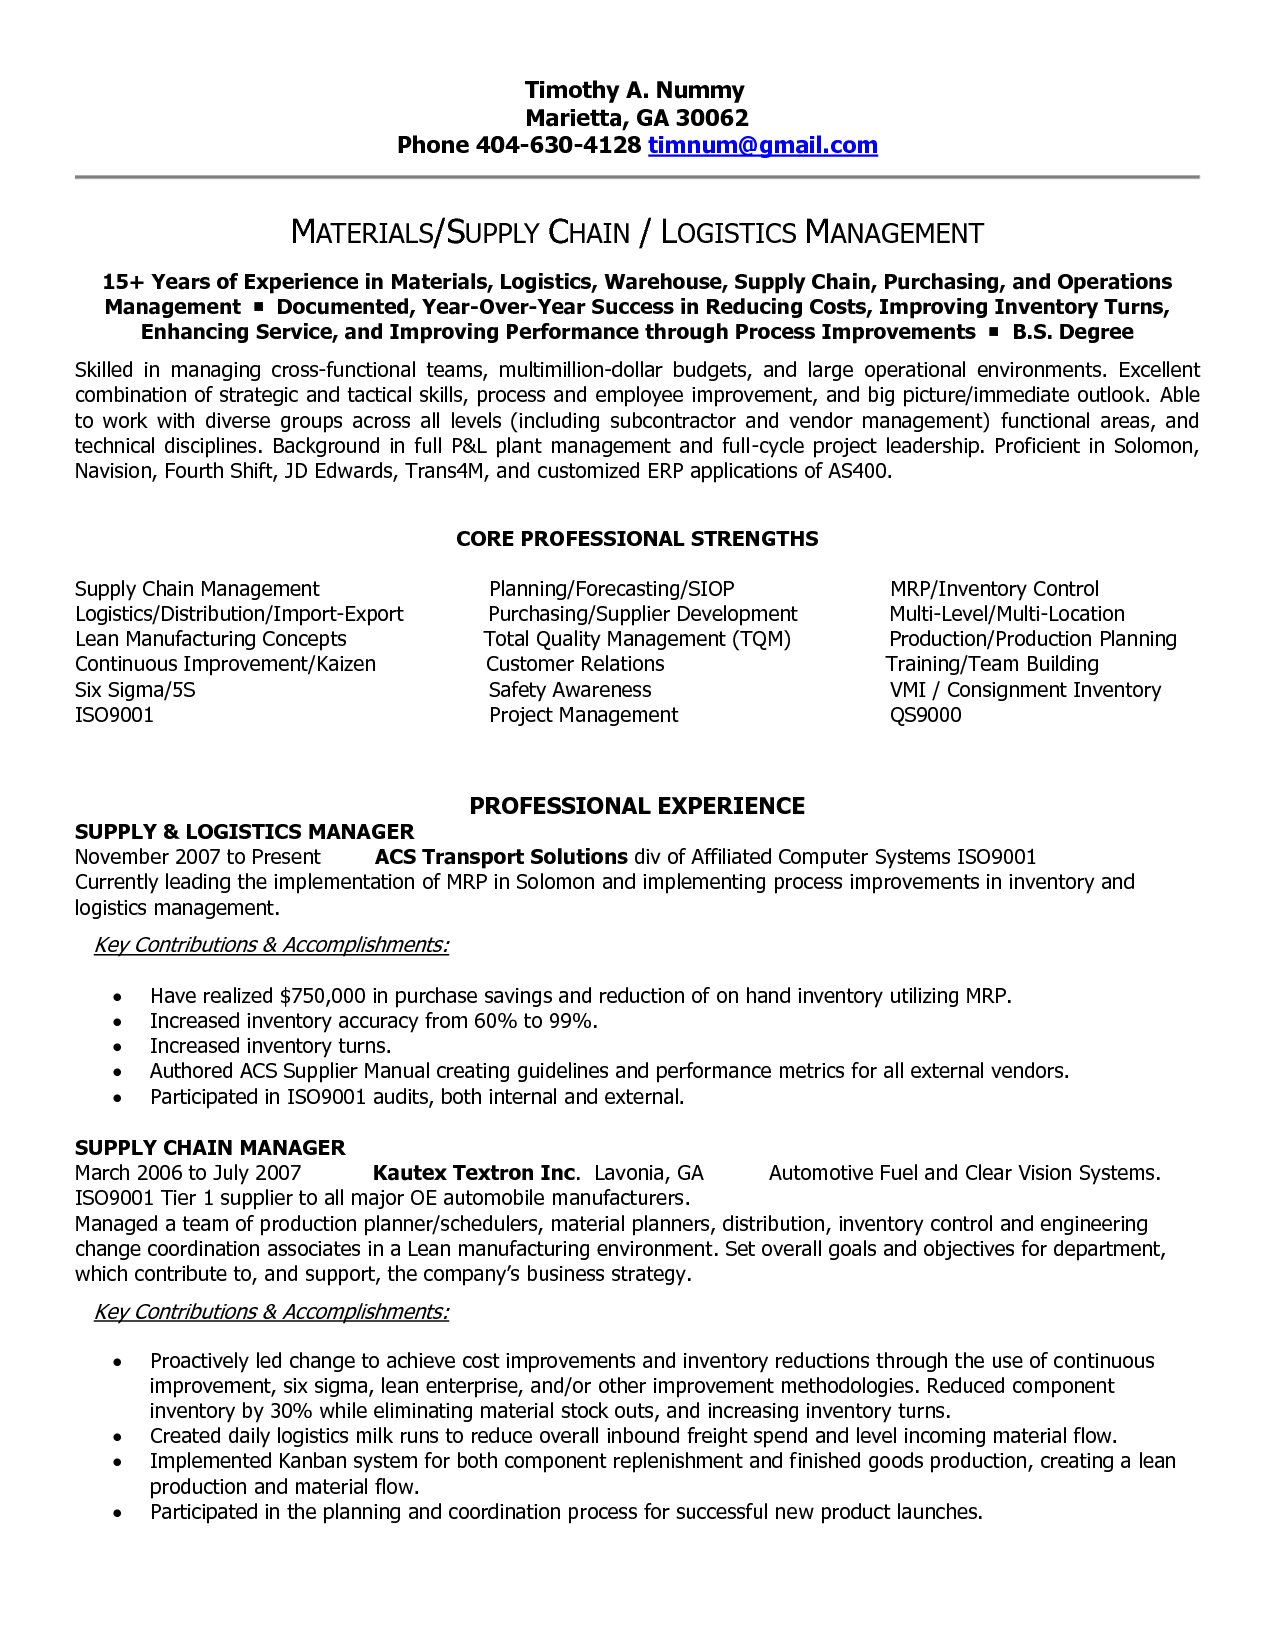 Supply Chain Resume Templates | Supply Chain Manager in Atlanta GA Resume  Timothy Nummy